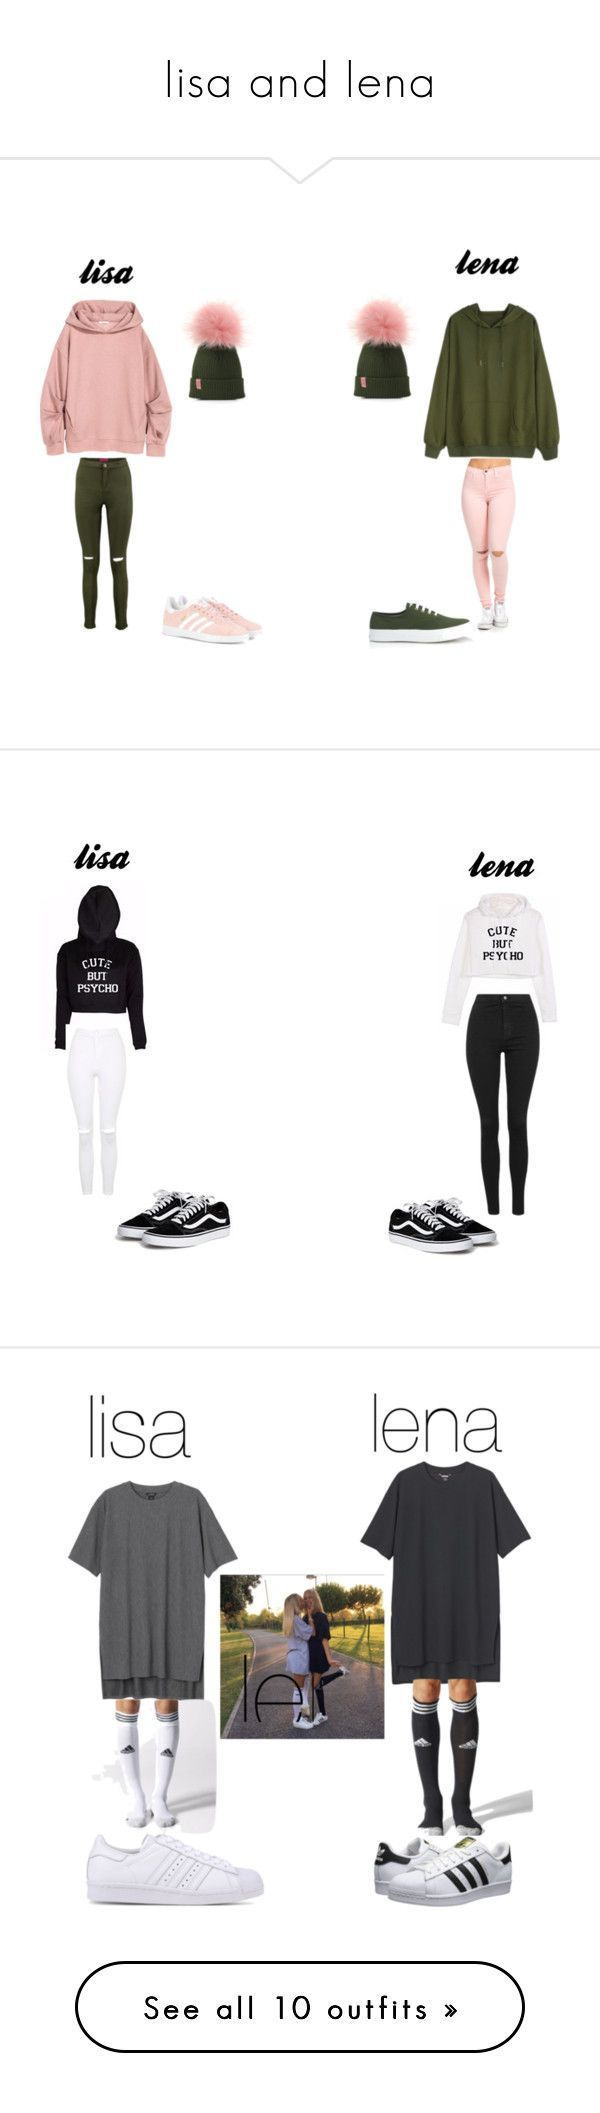 """lisa and lena"" by aestheticislife101 ❤ liked on Polyvore featuring Boohoo, Maison Kitsuné, adidas Originals, Topshop, Monki, adidas, 7 For All Mankind, Vans, Glamorous and Triangl - Tap the pin if you love super heroes too! Cause guess what? you will LOVE these super hero fitness shirts!"